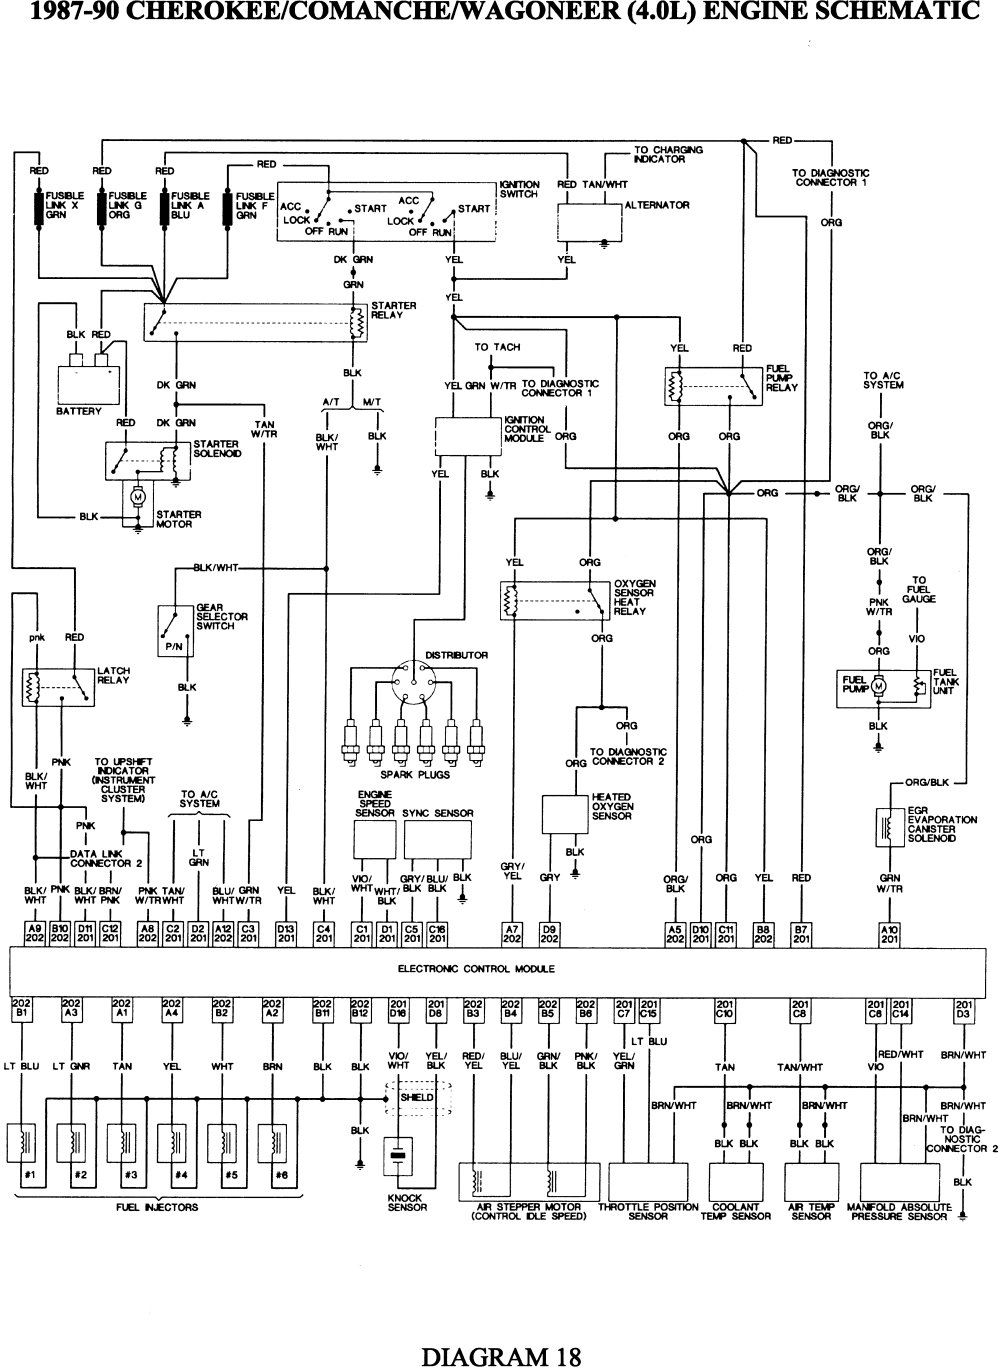 wiring diagram for 1997 jeep cherokee wiring diagram insider 1997 jeep cherokee parts diagram 1997 jeep cherokee diagram [ 1000 x 1369 Pixel ]